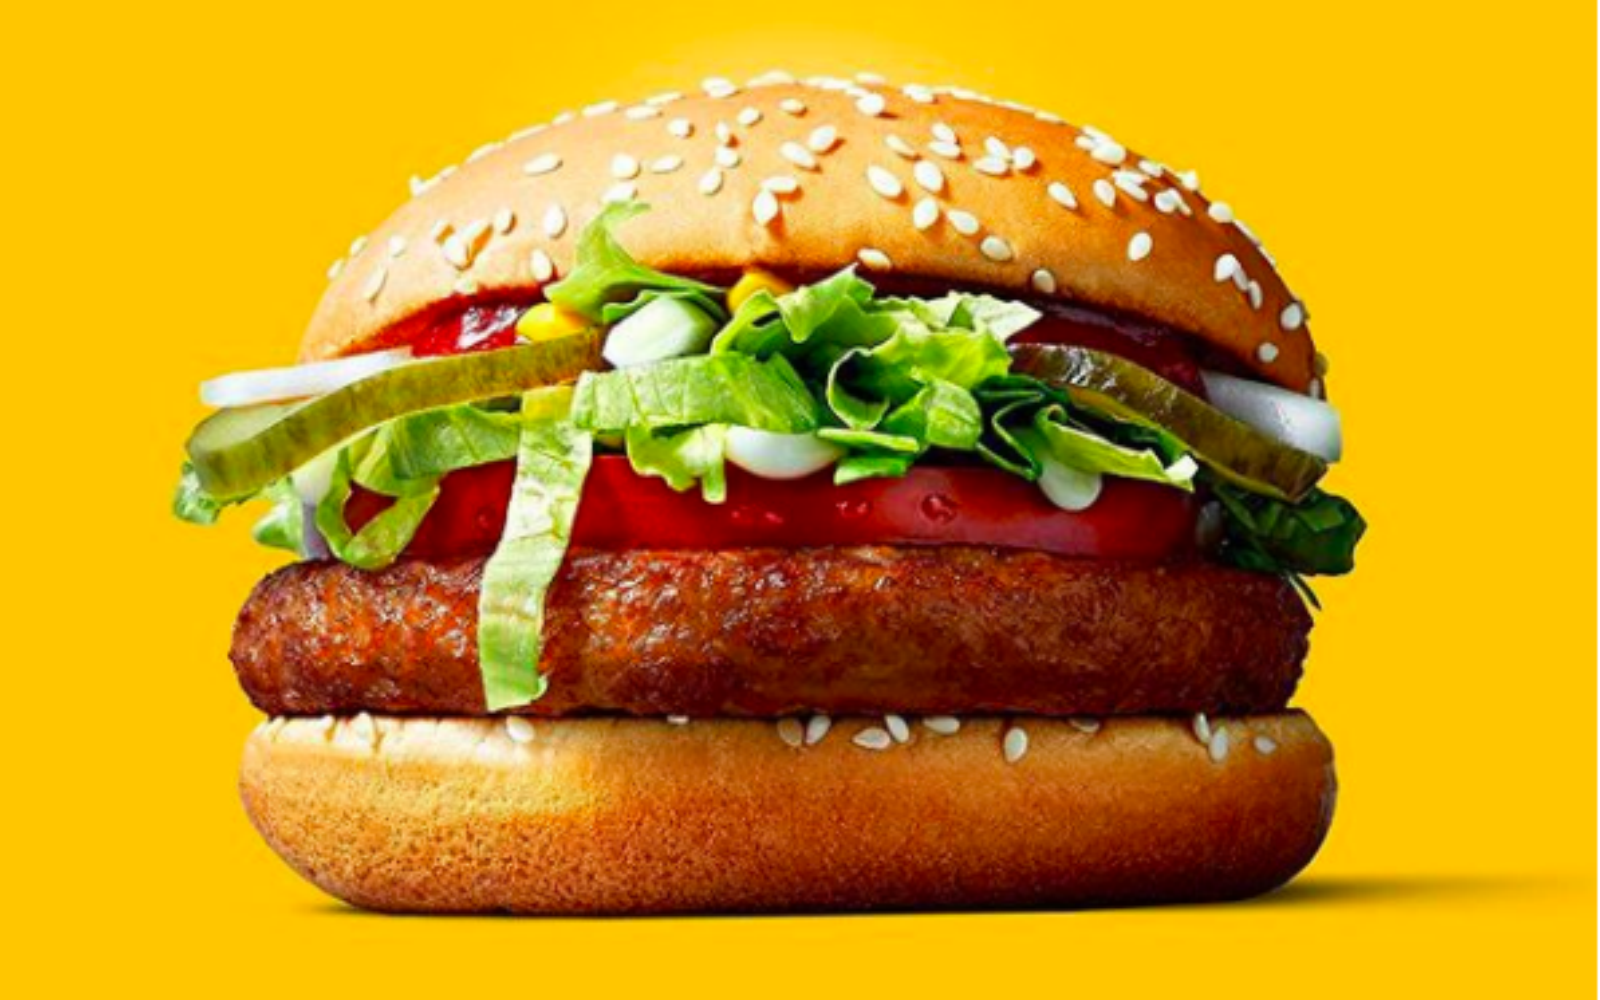 McDonald's McVegan Burger in Finland